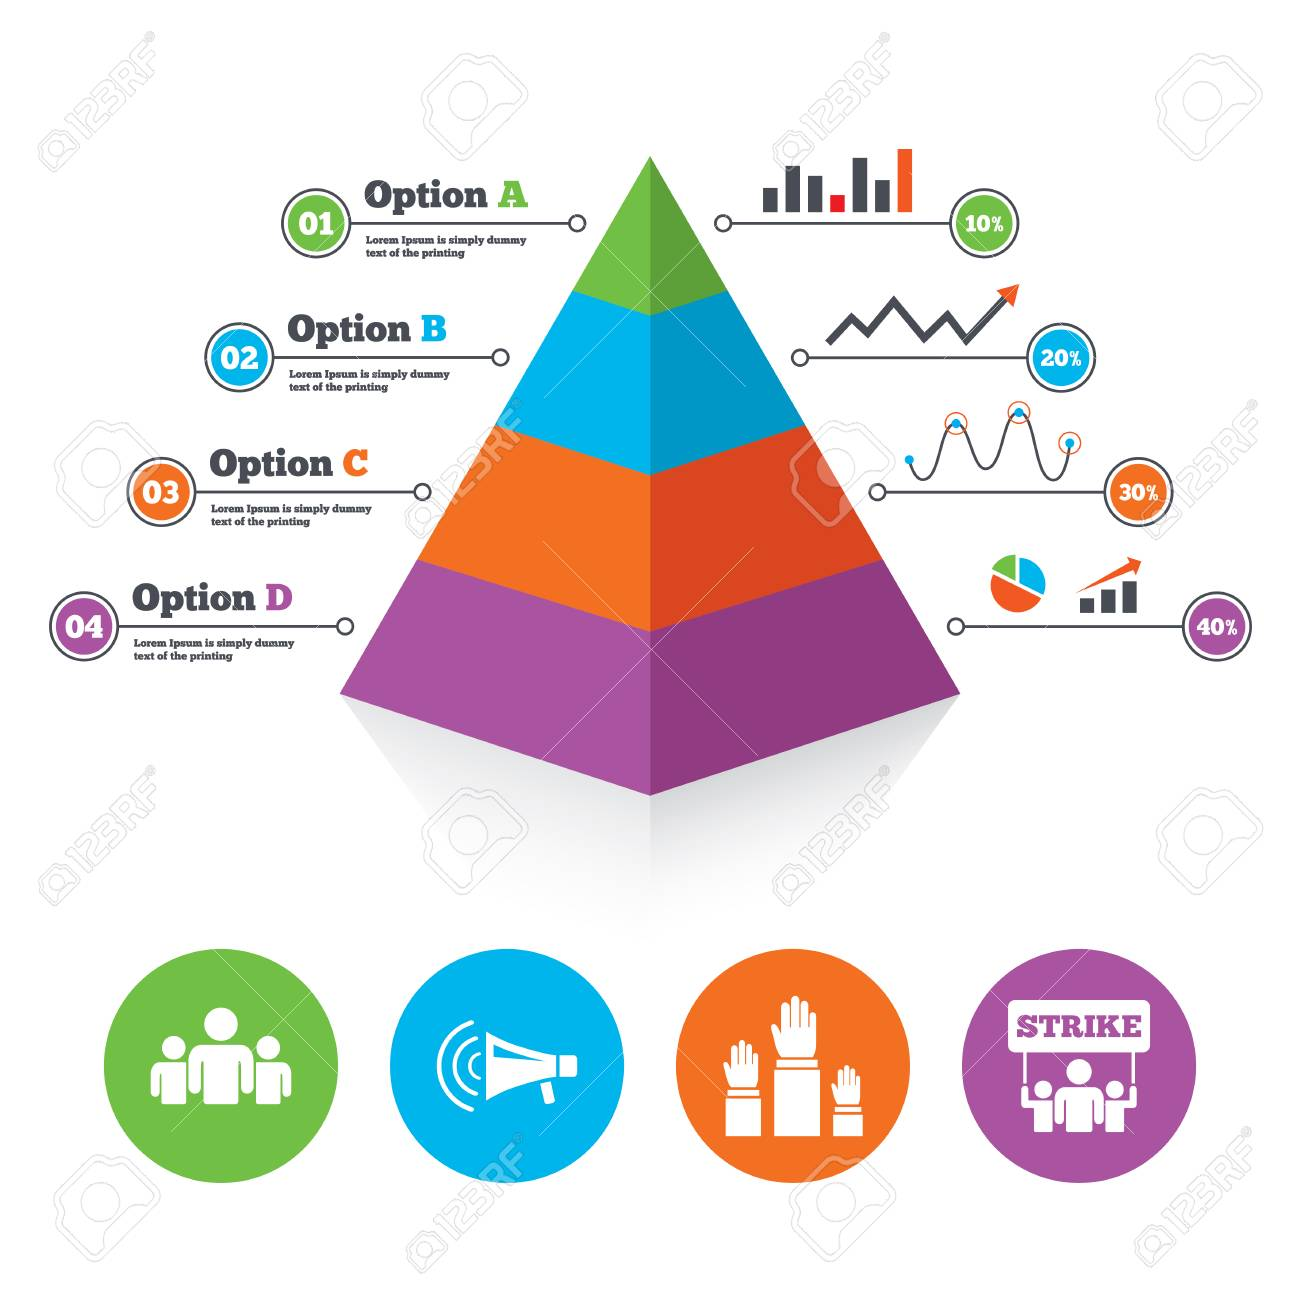 pyramid chart template strike group of people icon megaphone